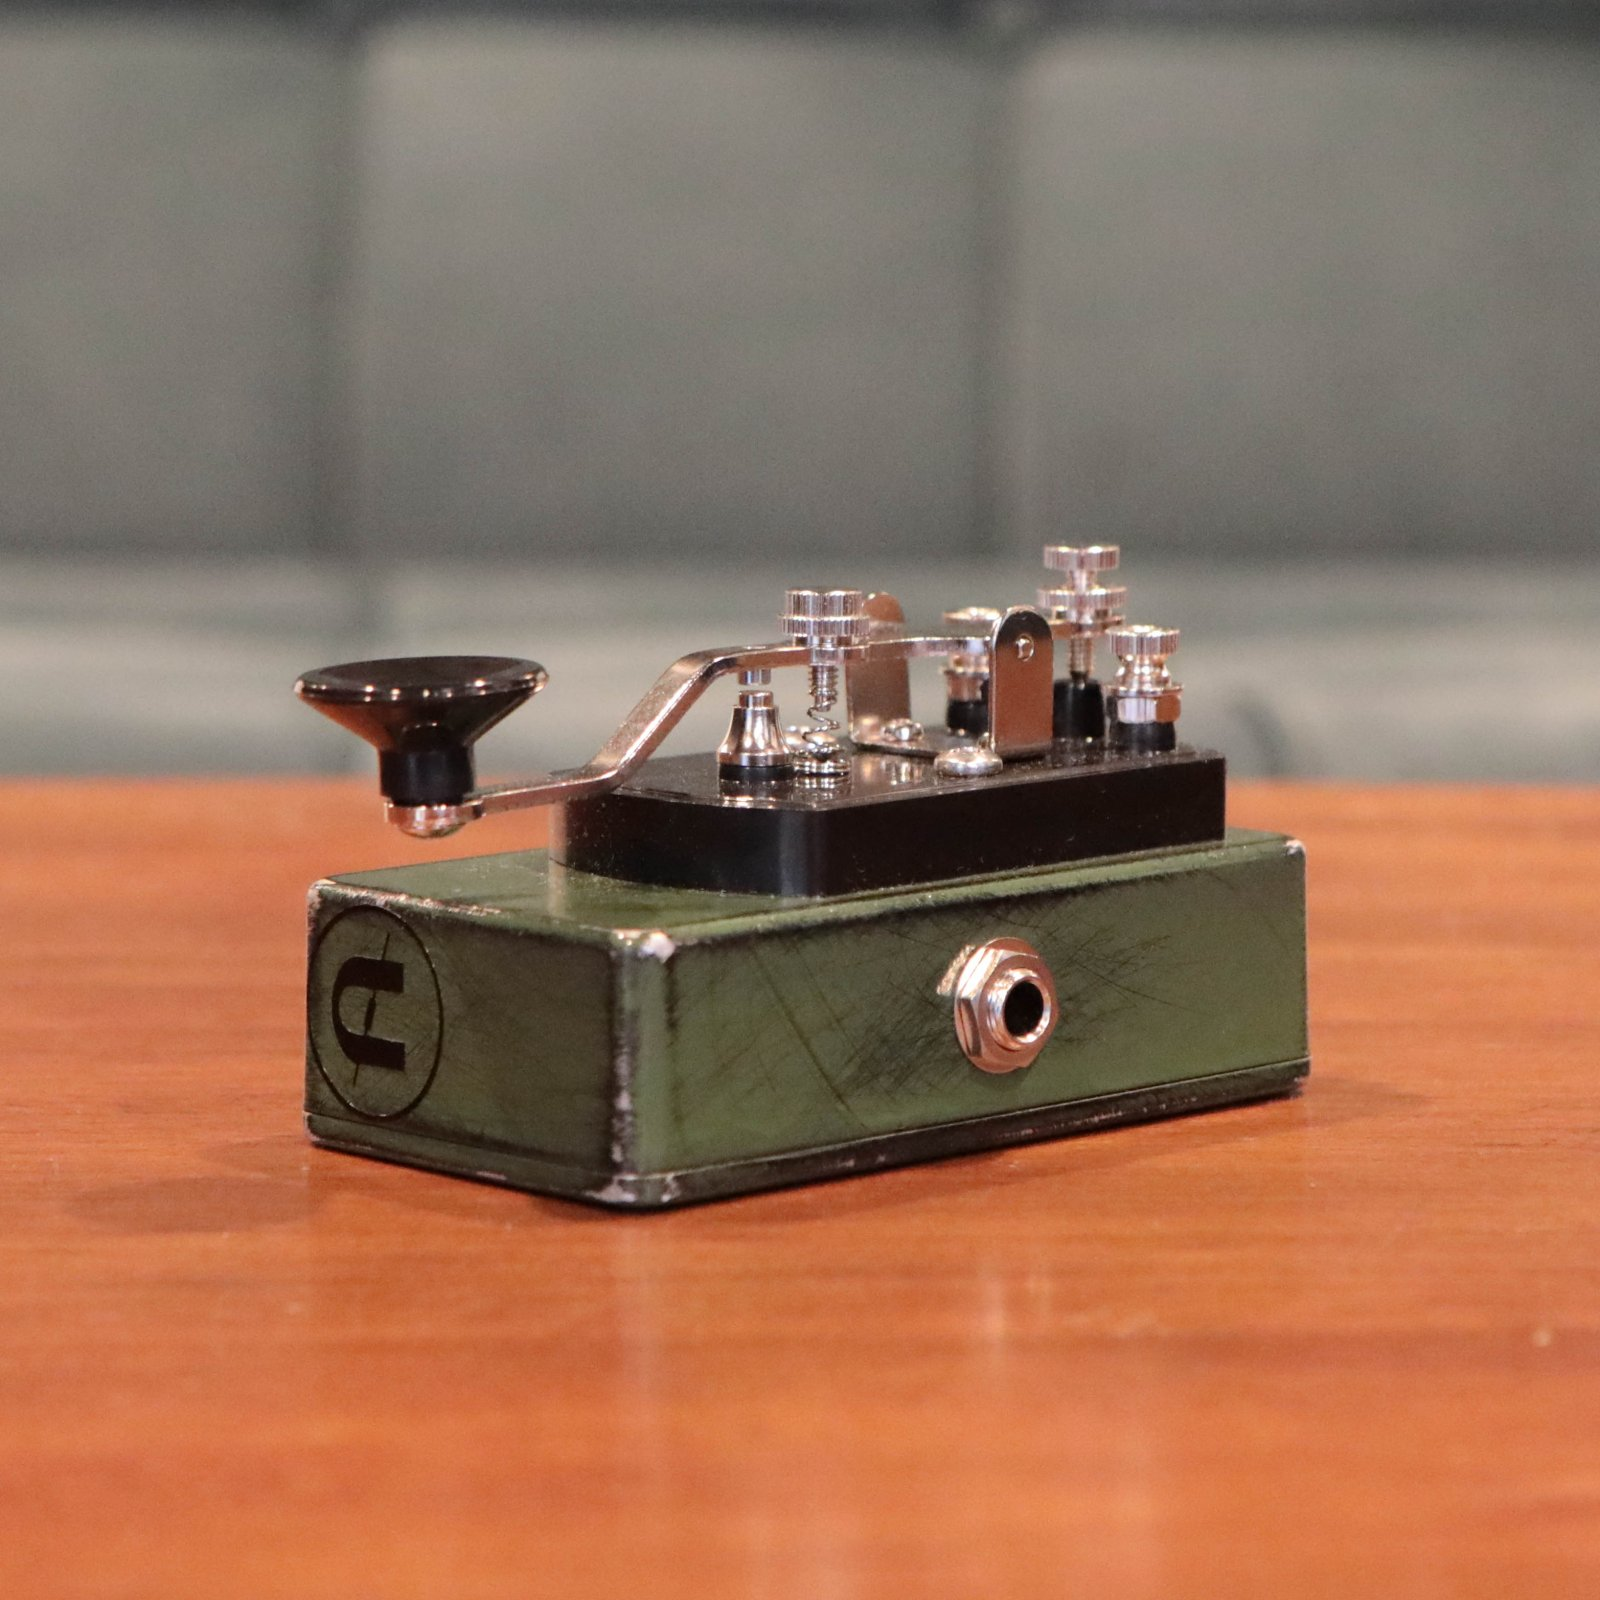 CopperSound Pedal Effects Telegraph Stutter Guitar Pedal - Relic'd Army Green